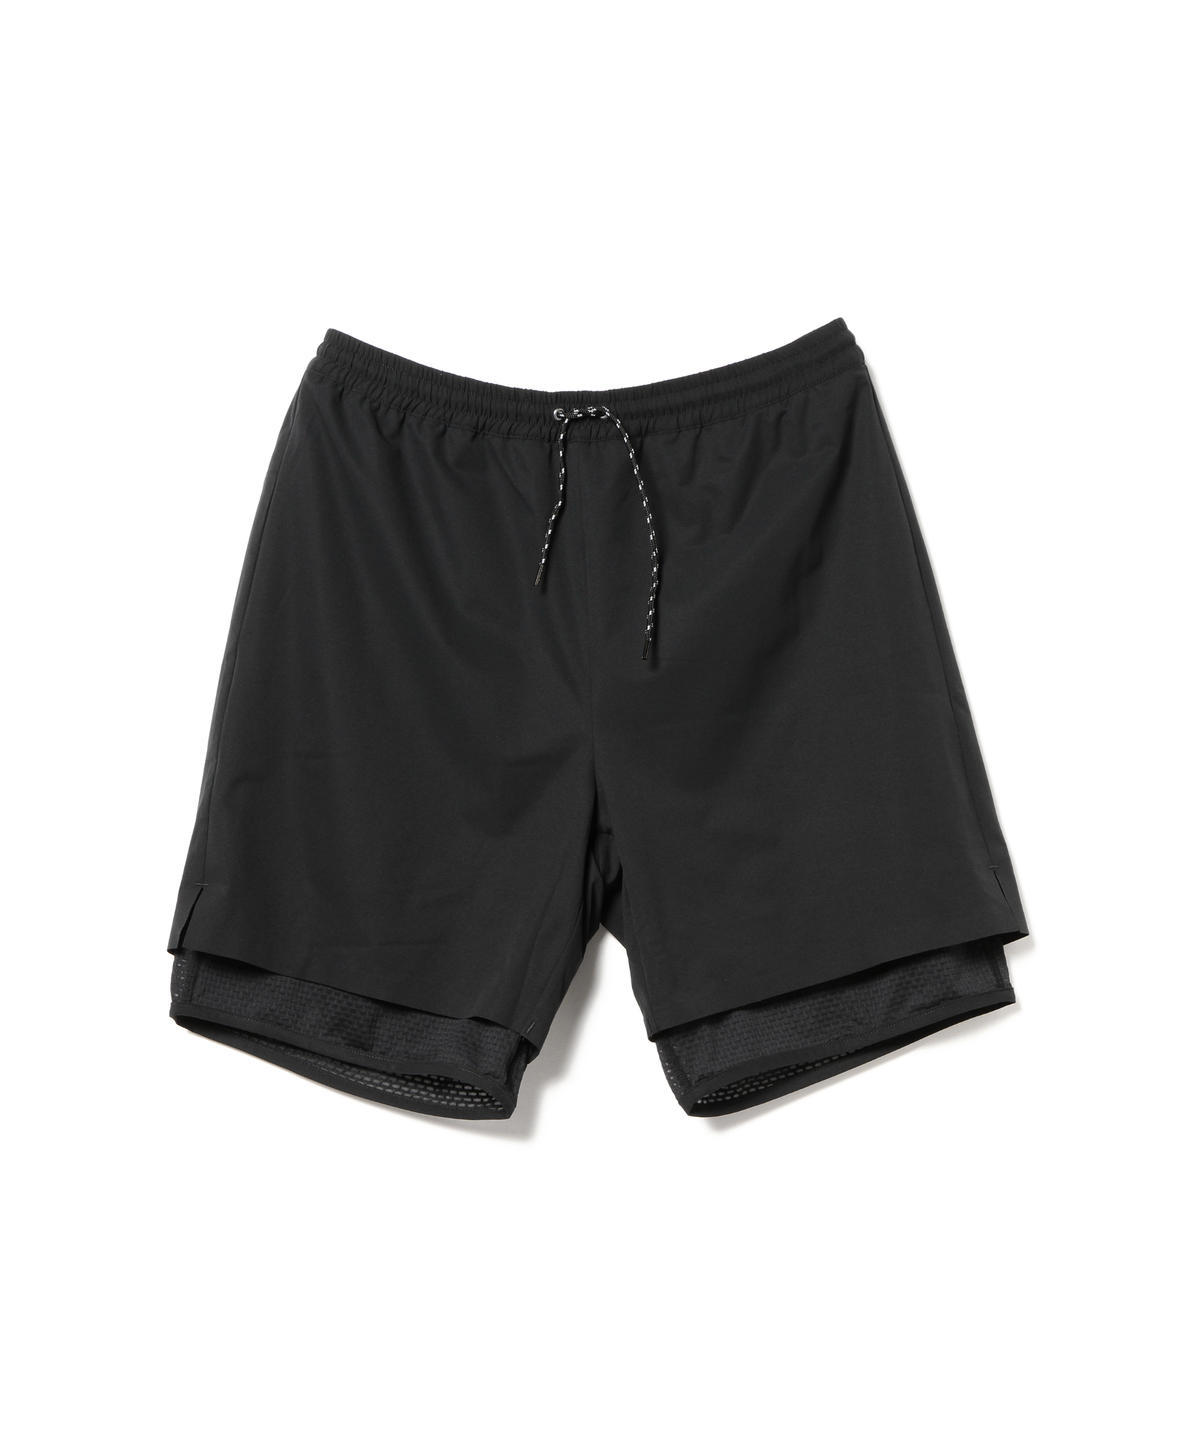 Super Dry 2Layer Shorts